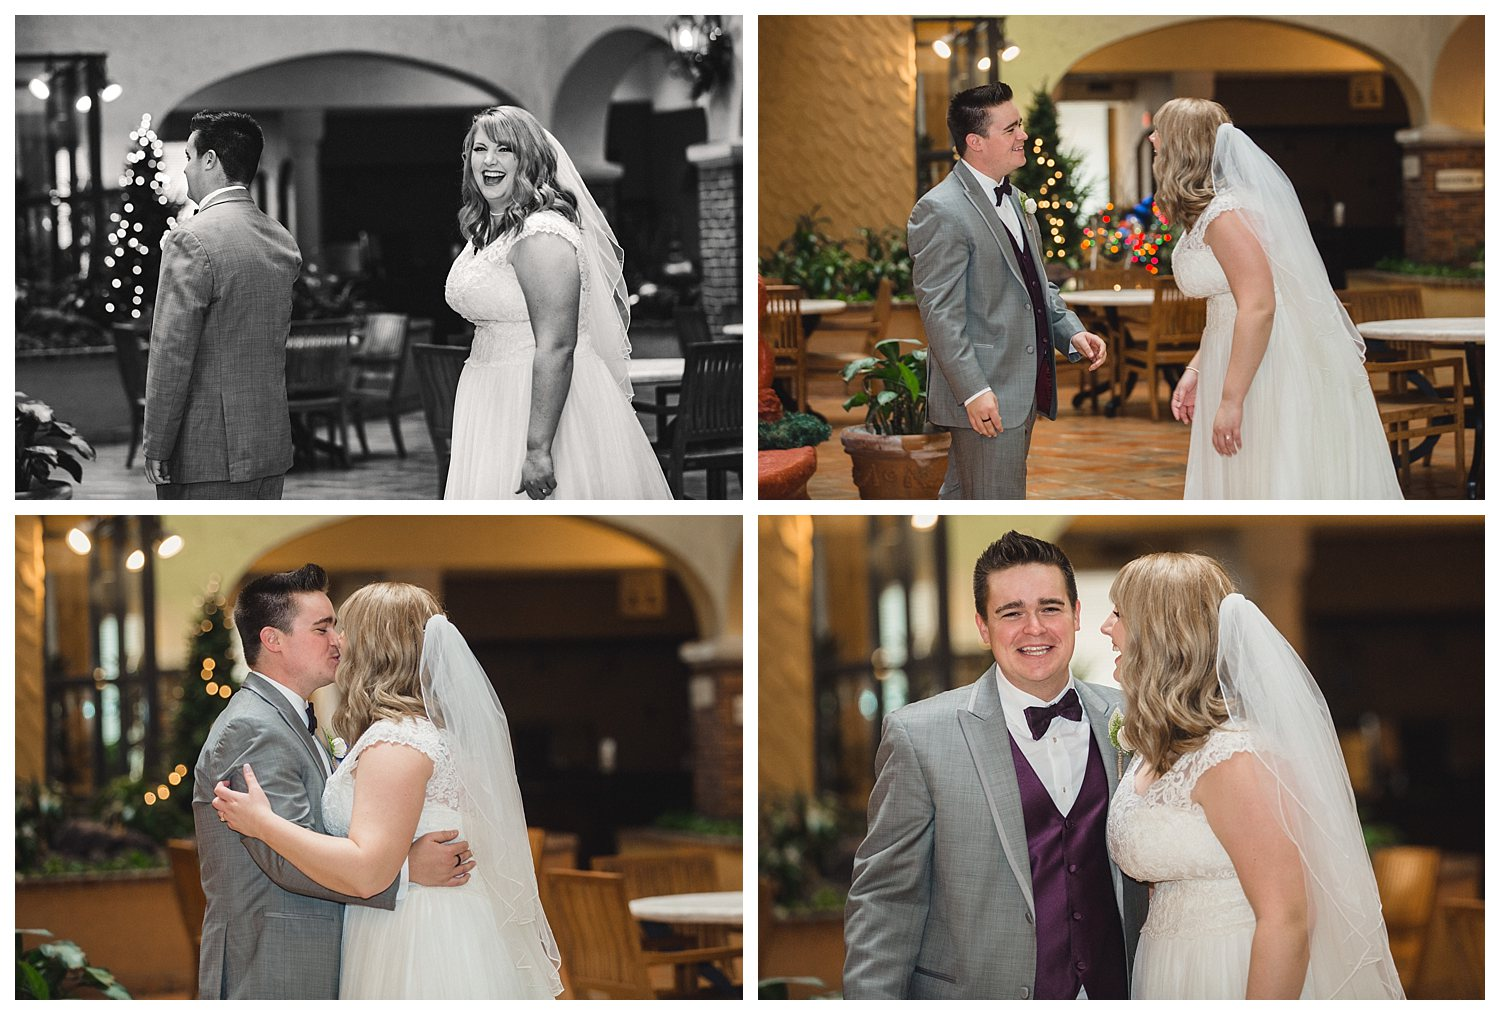 Kelsey_Diane_Photography_Loose_Mansion_Wedding_Photography_Kansas_City_Victor_Lyndsay_0321.jpg